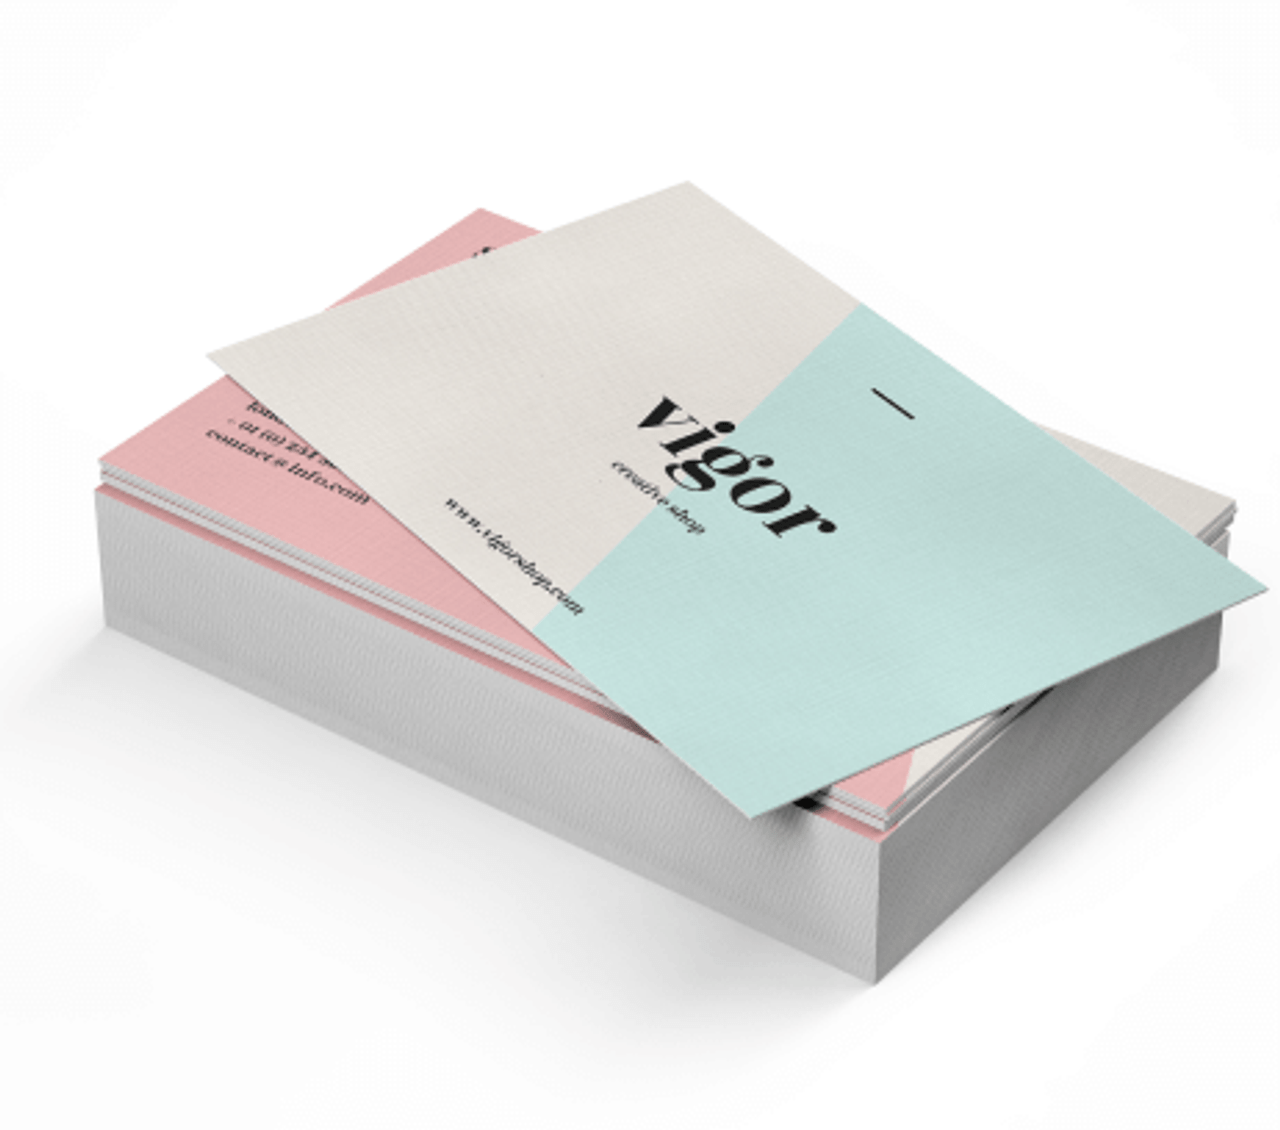 Business cards are widely used as a networking tool and a way to make a good first impression. Linen business cards offer a premium look and a distinctive feel that stand out.